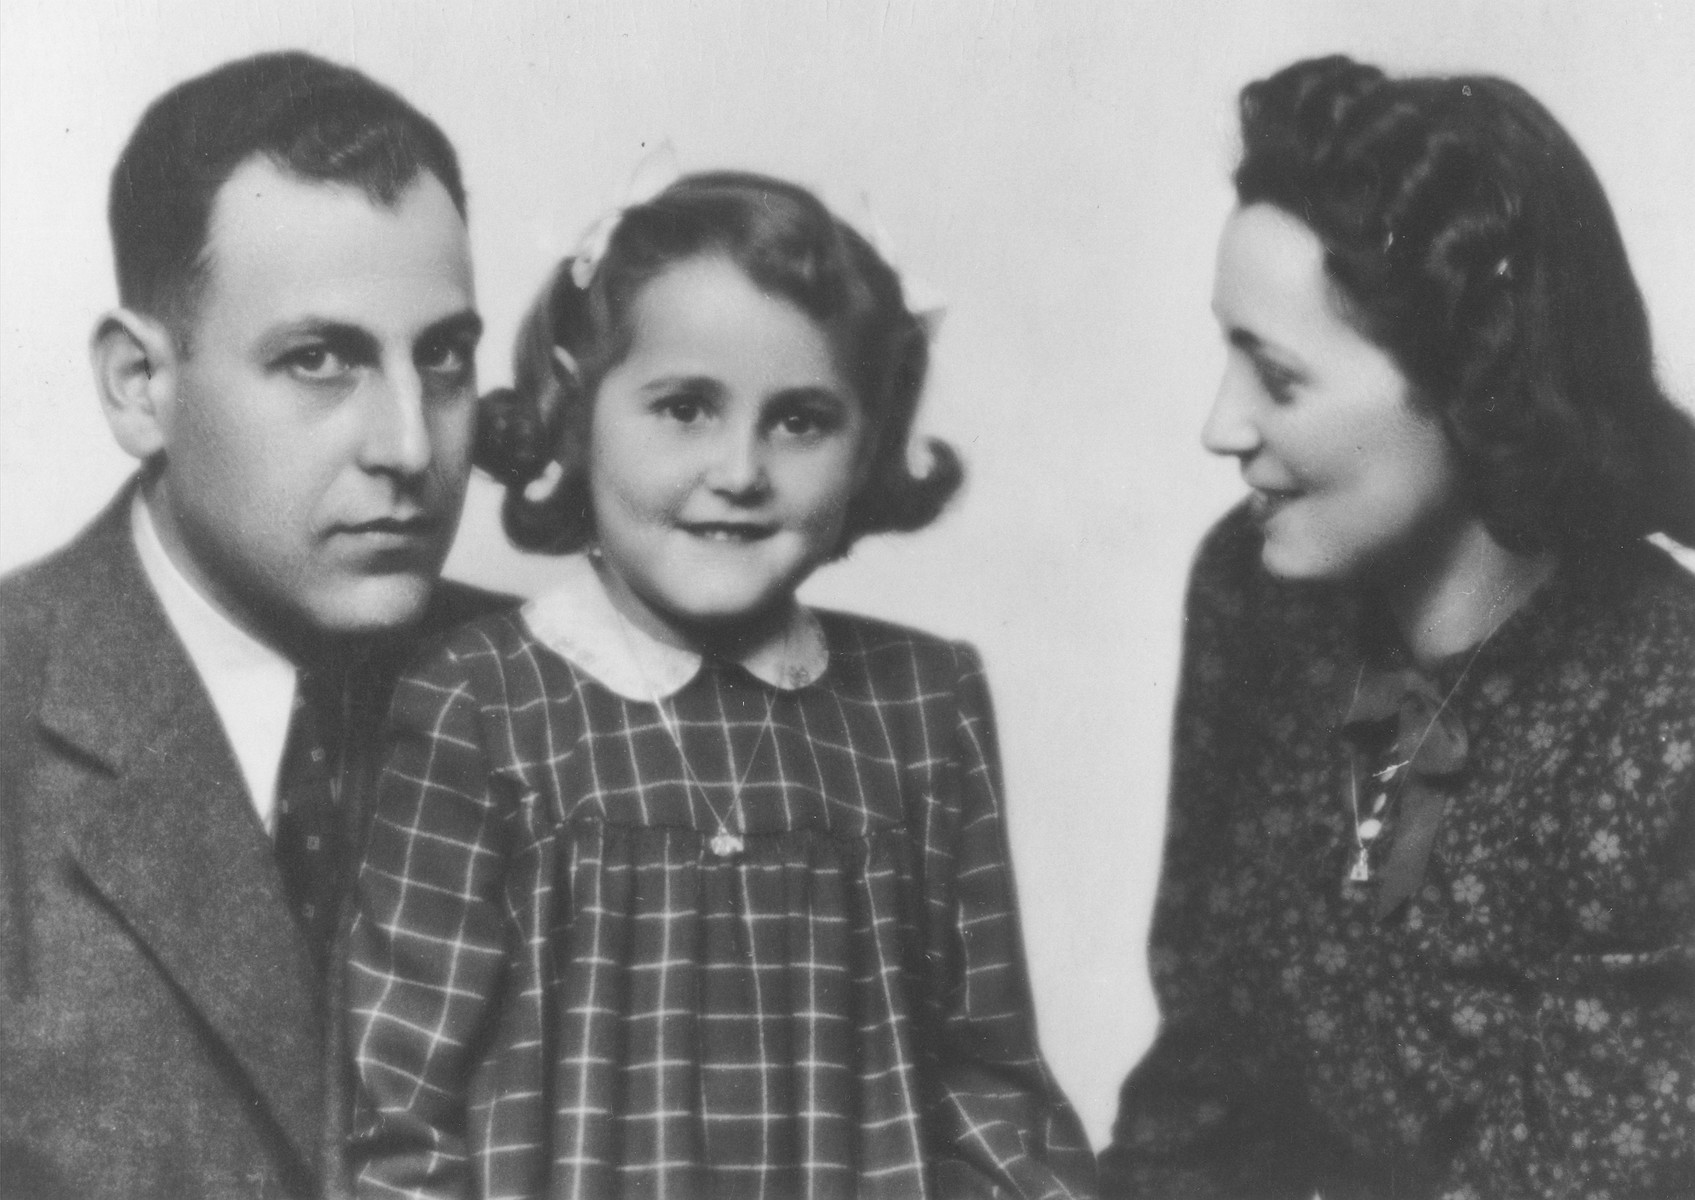 Portrait of a Jewish family in Prague.  Pictured from left to right are: Karel, Alena and Marta Pekova.